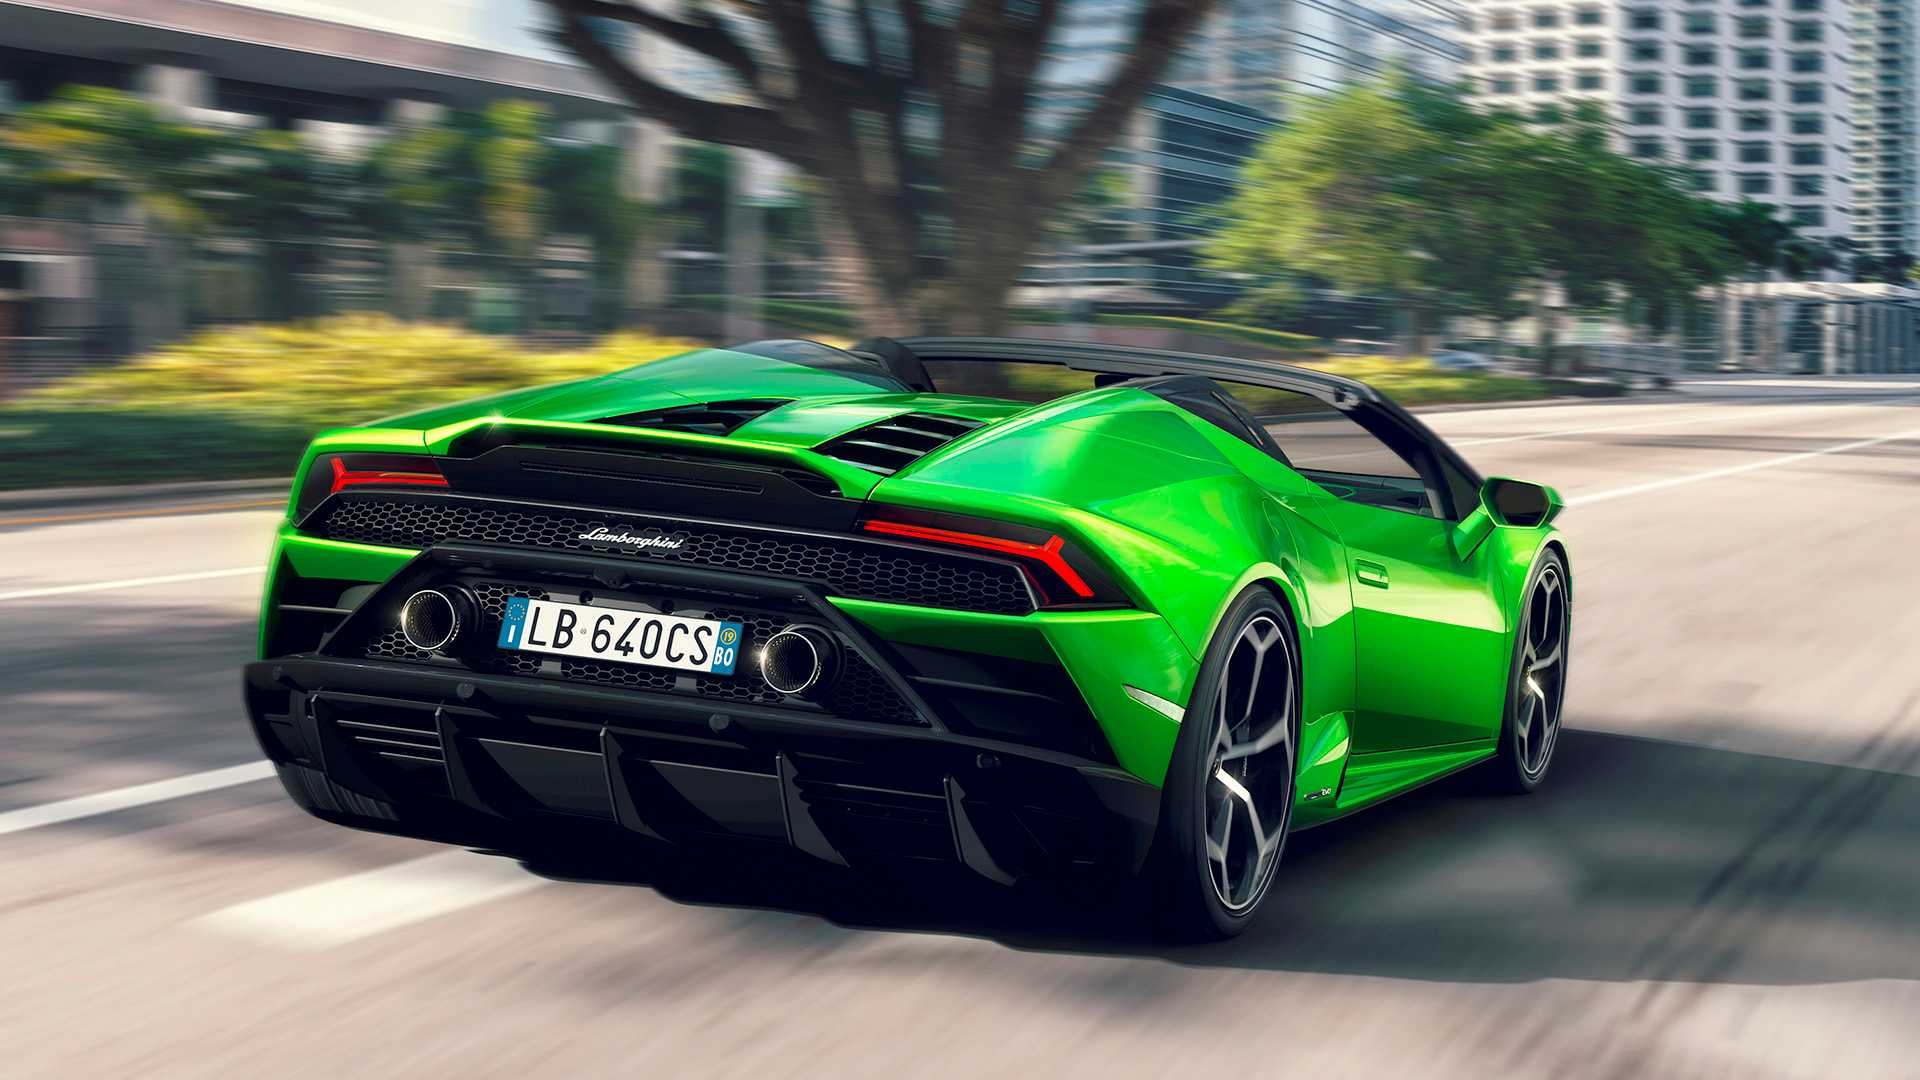 2019 Lamborghini Huracán EVO Spyder Rear Three-Quarter Wallpapers (3)